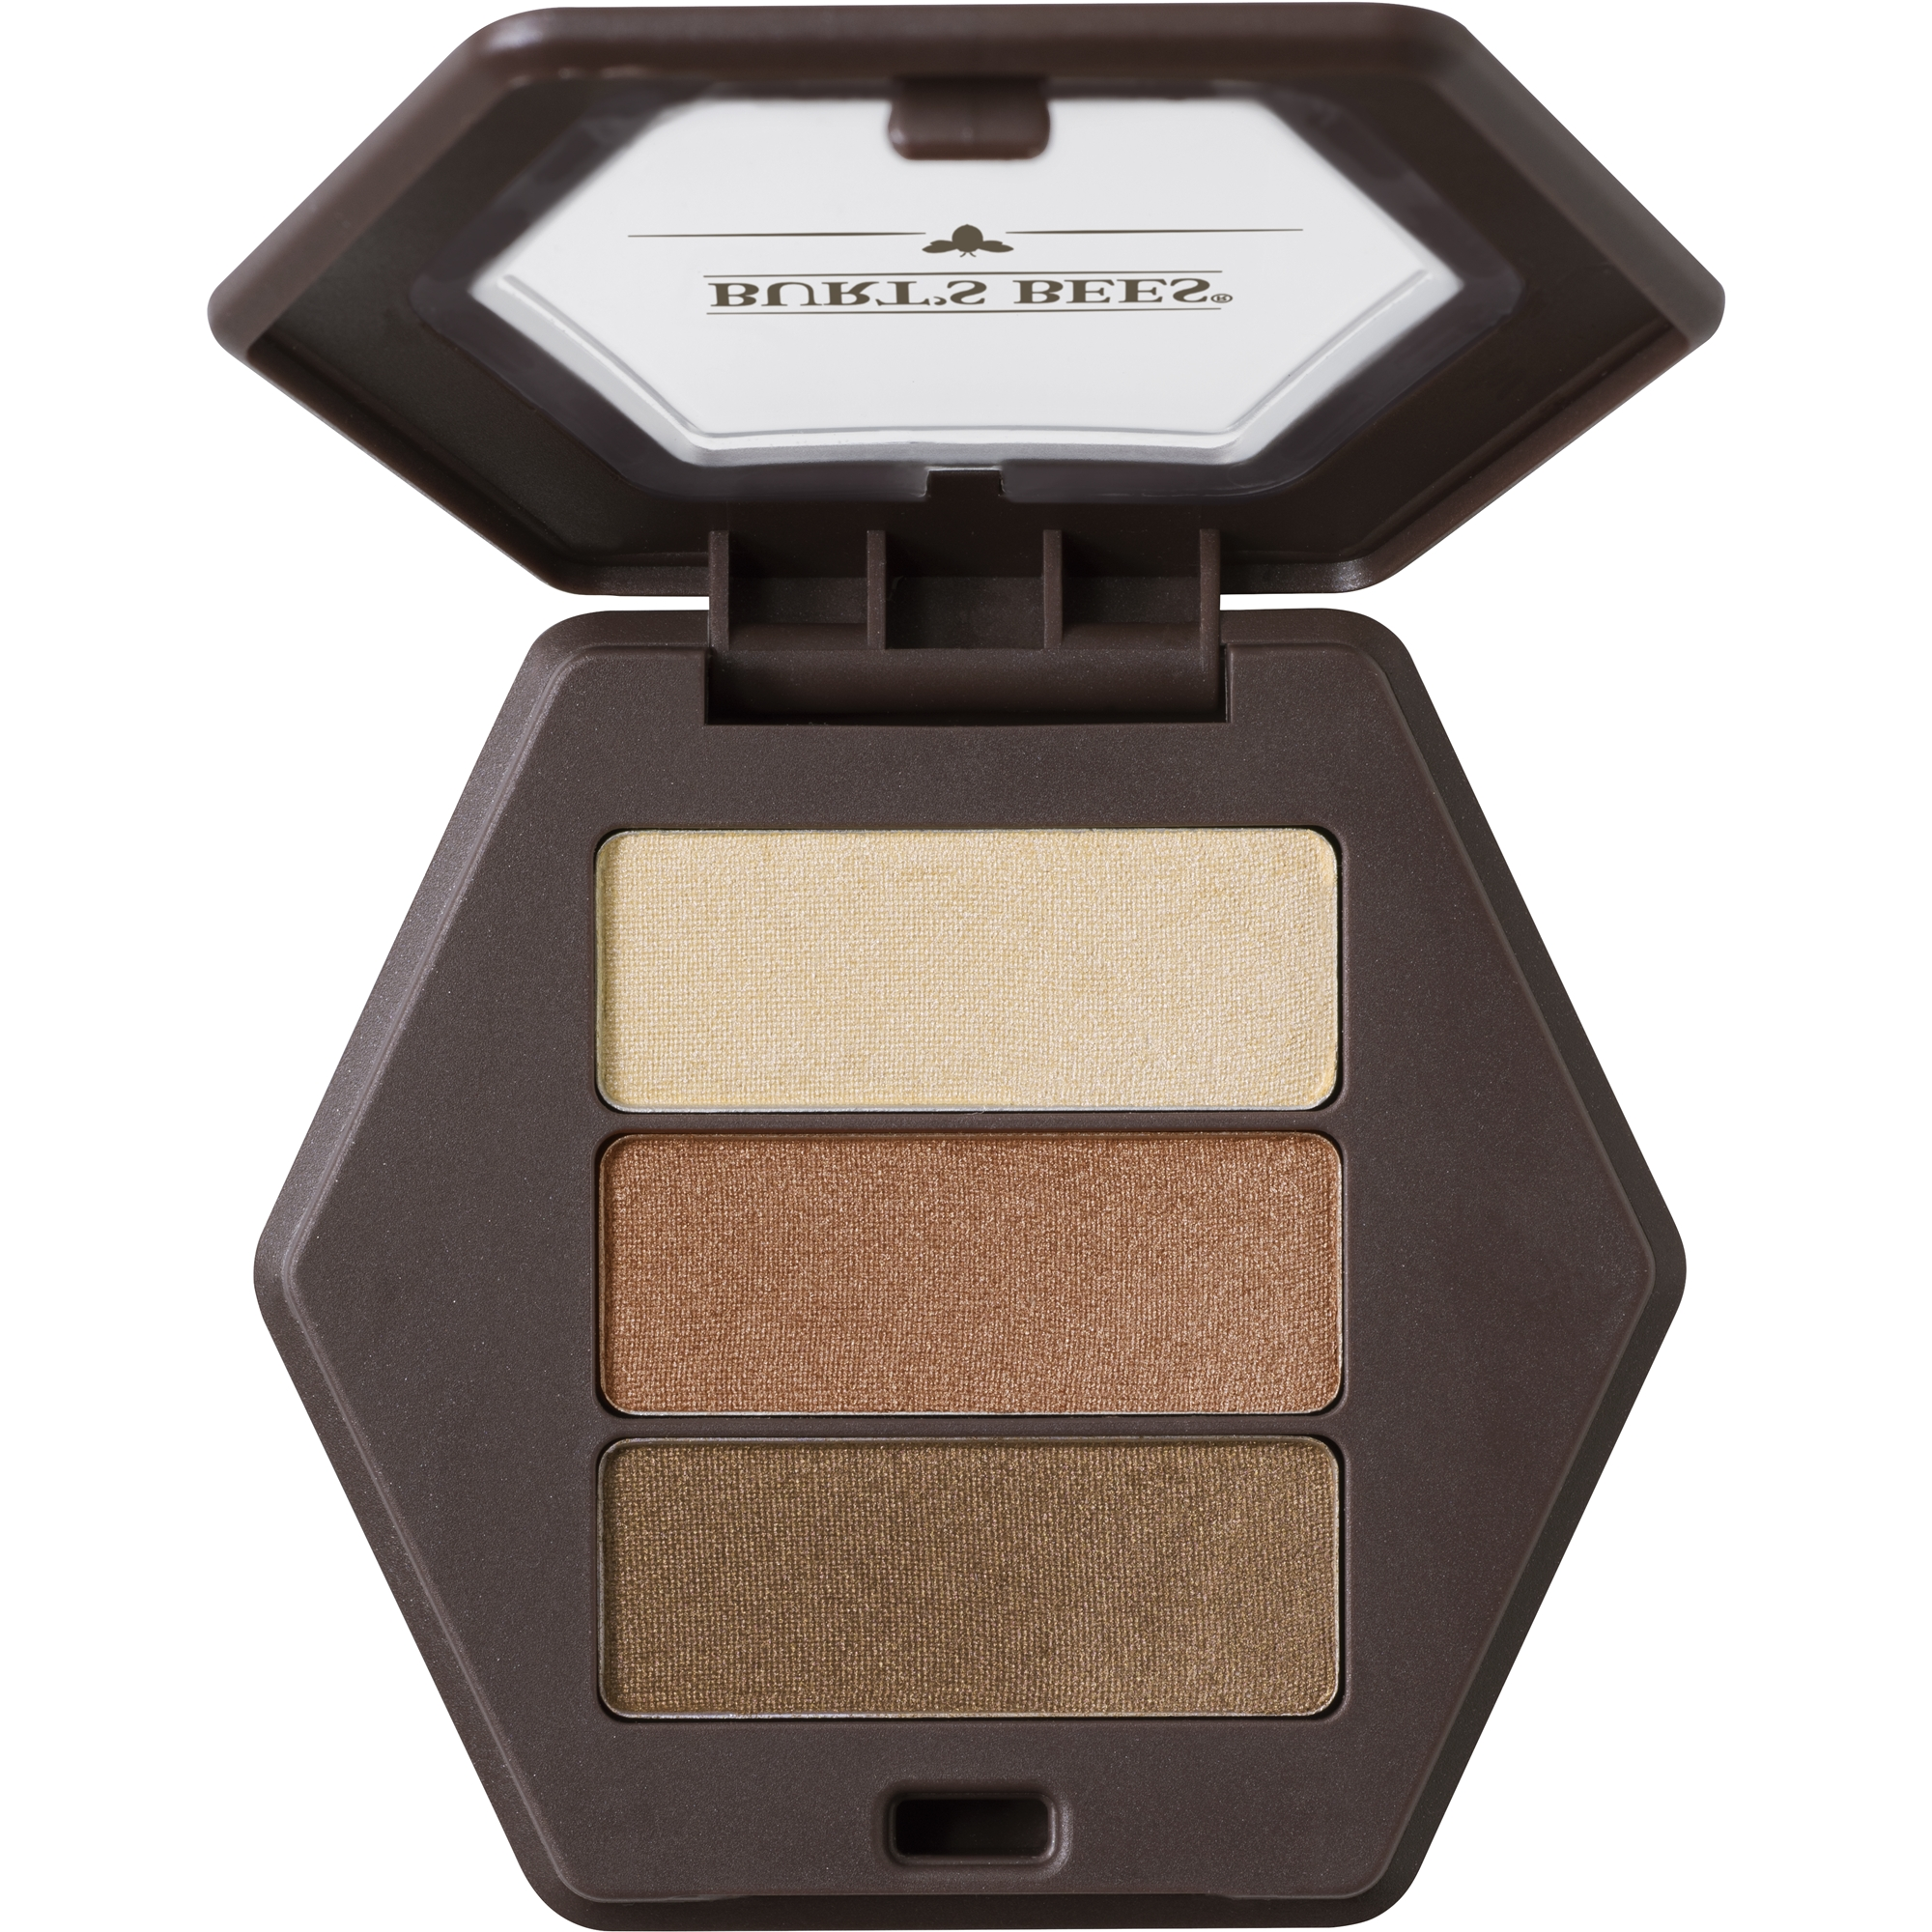 Burt's Bees 100% Natural Eye Shadow Palette with 3 Shades, Blooming Desert, 0.12 oz